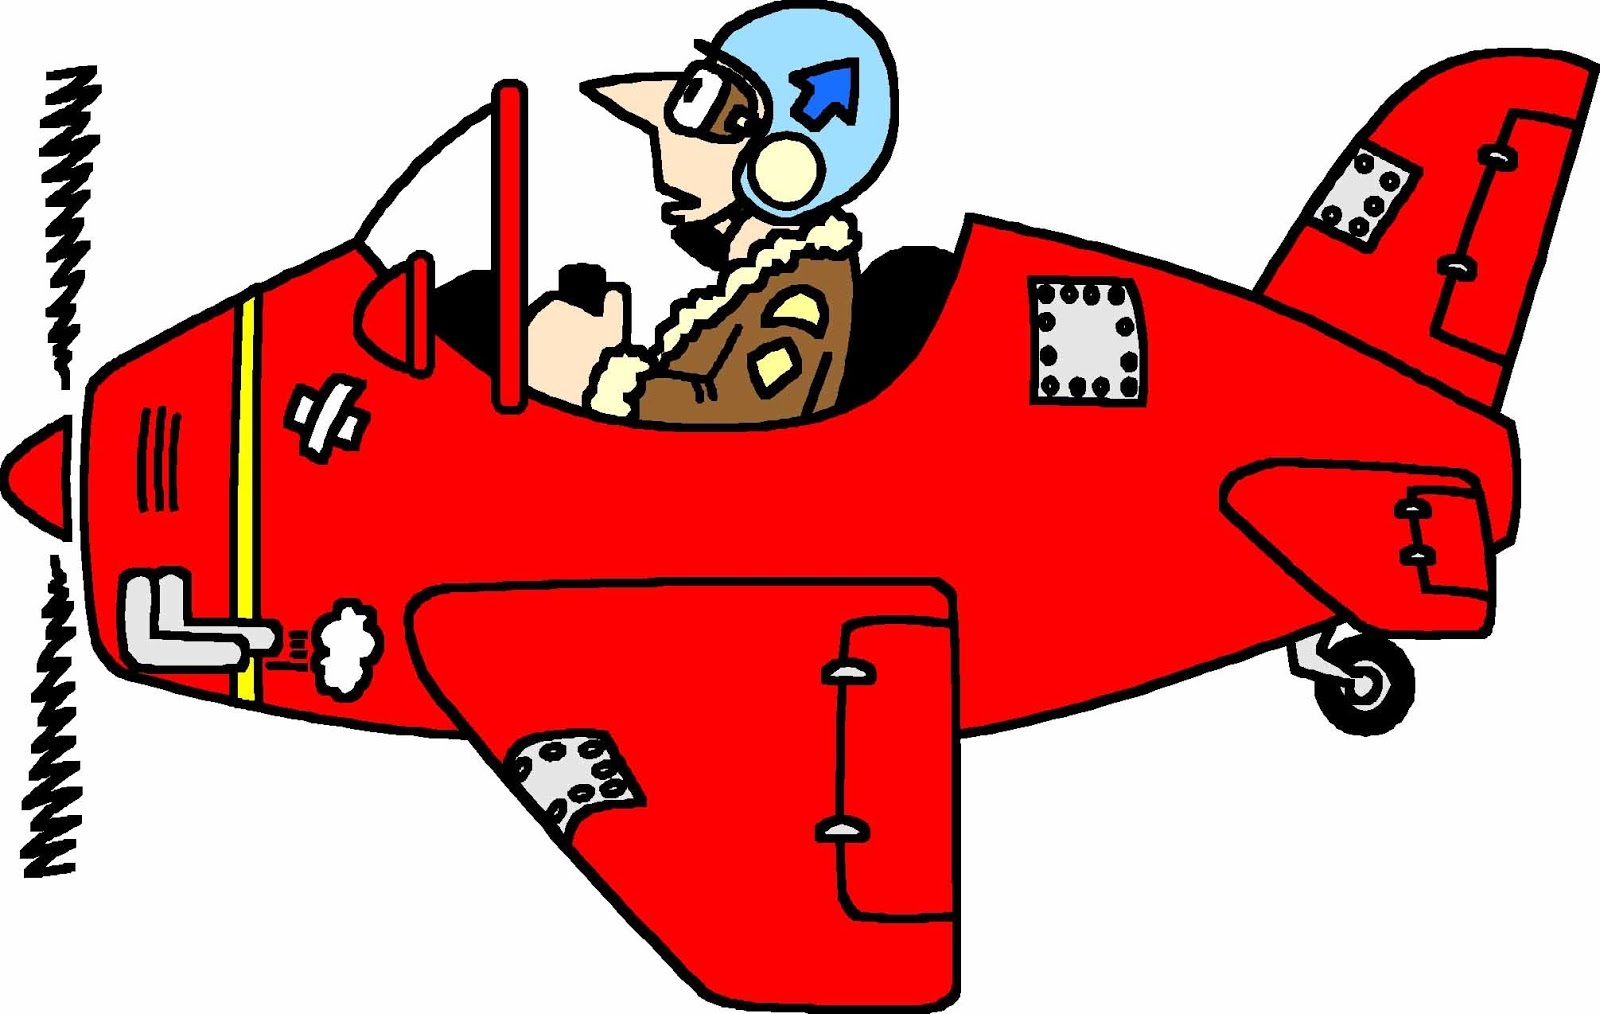 Airplane Clip Art Airplane Outline Kg Worksheets